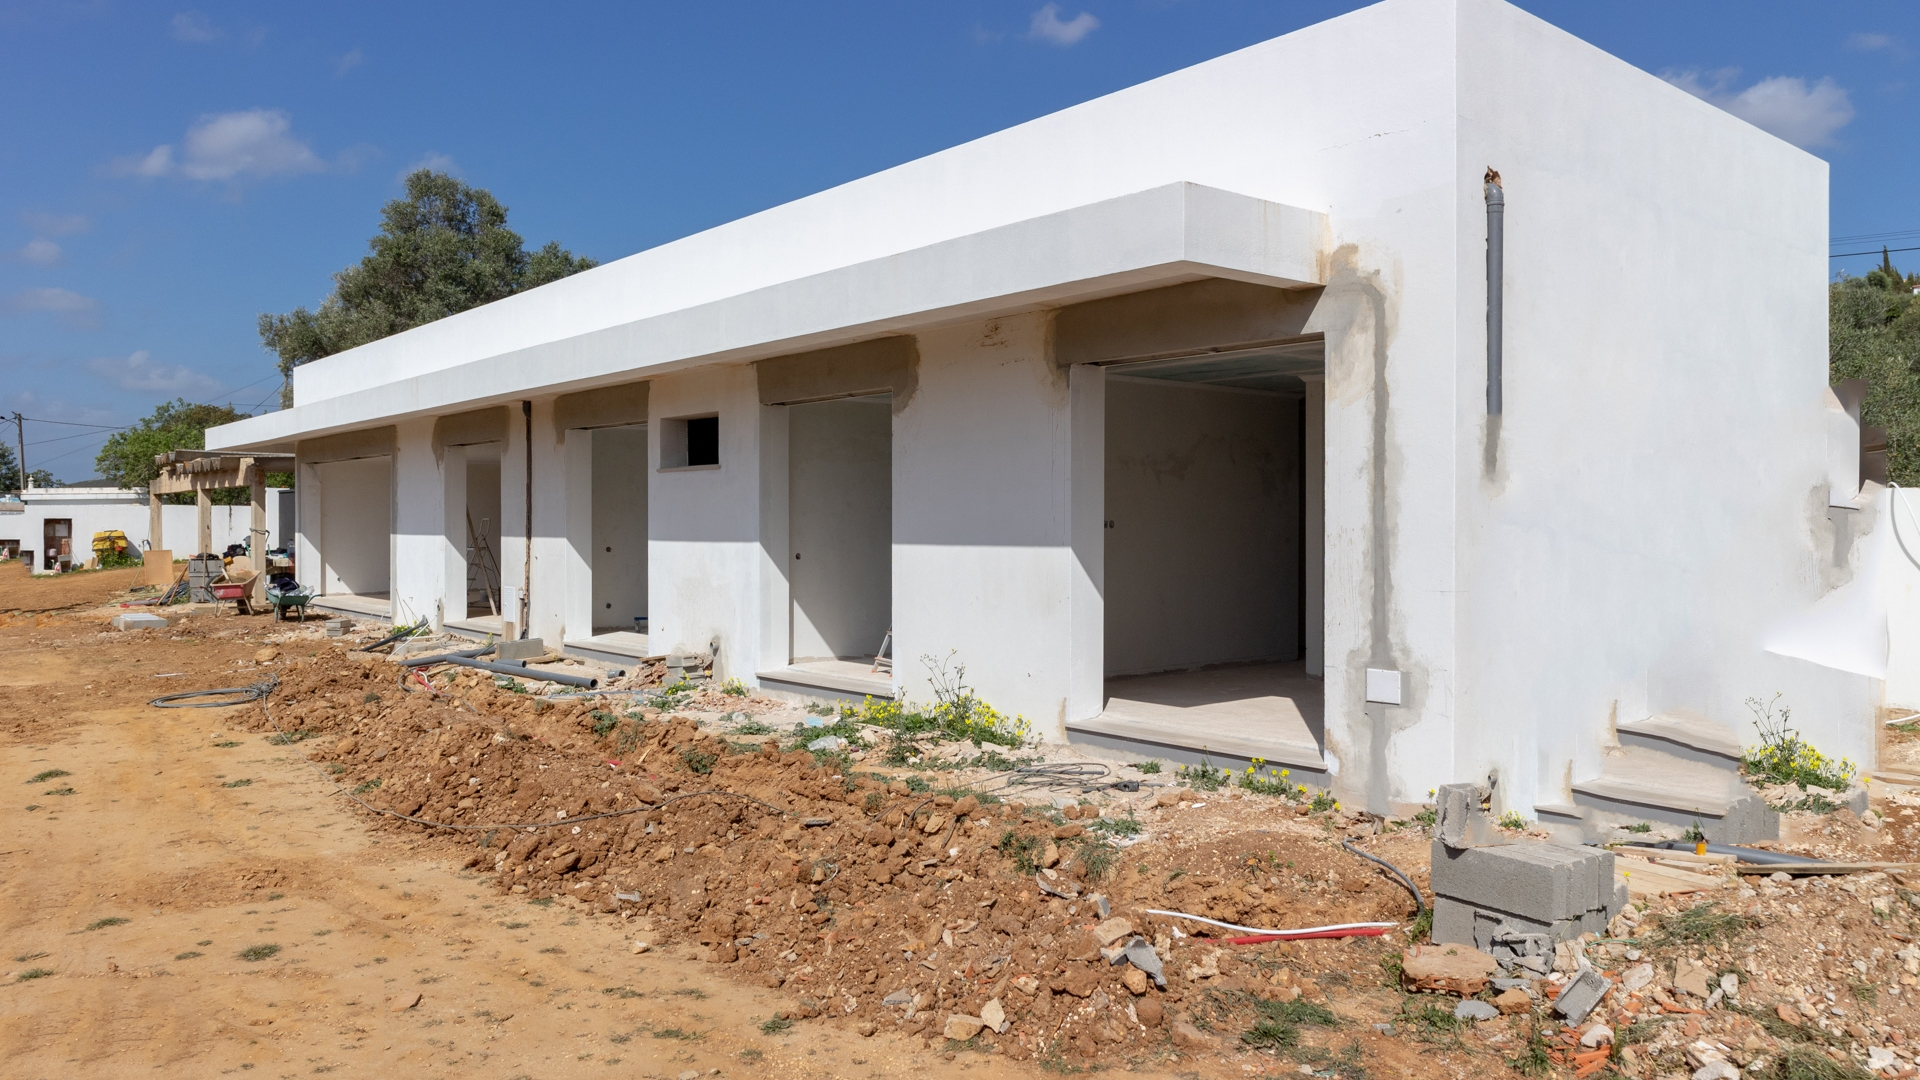 Brand New South Facing 3 bedroom Country Villa in Mexilhoeira Grande | LG1418 Brand new 3 bedroom 3 bathroom villa with big garden and possibility to construct a swimming pool or extend building further, in Mexilhoeira Grande.